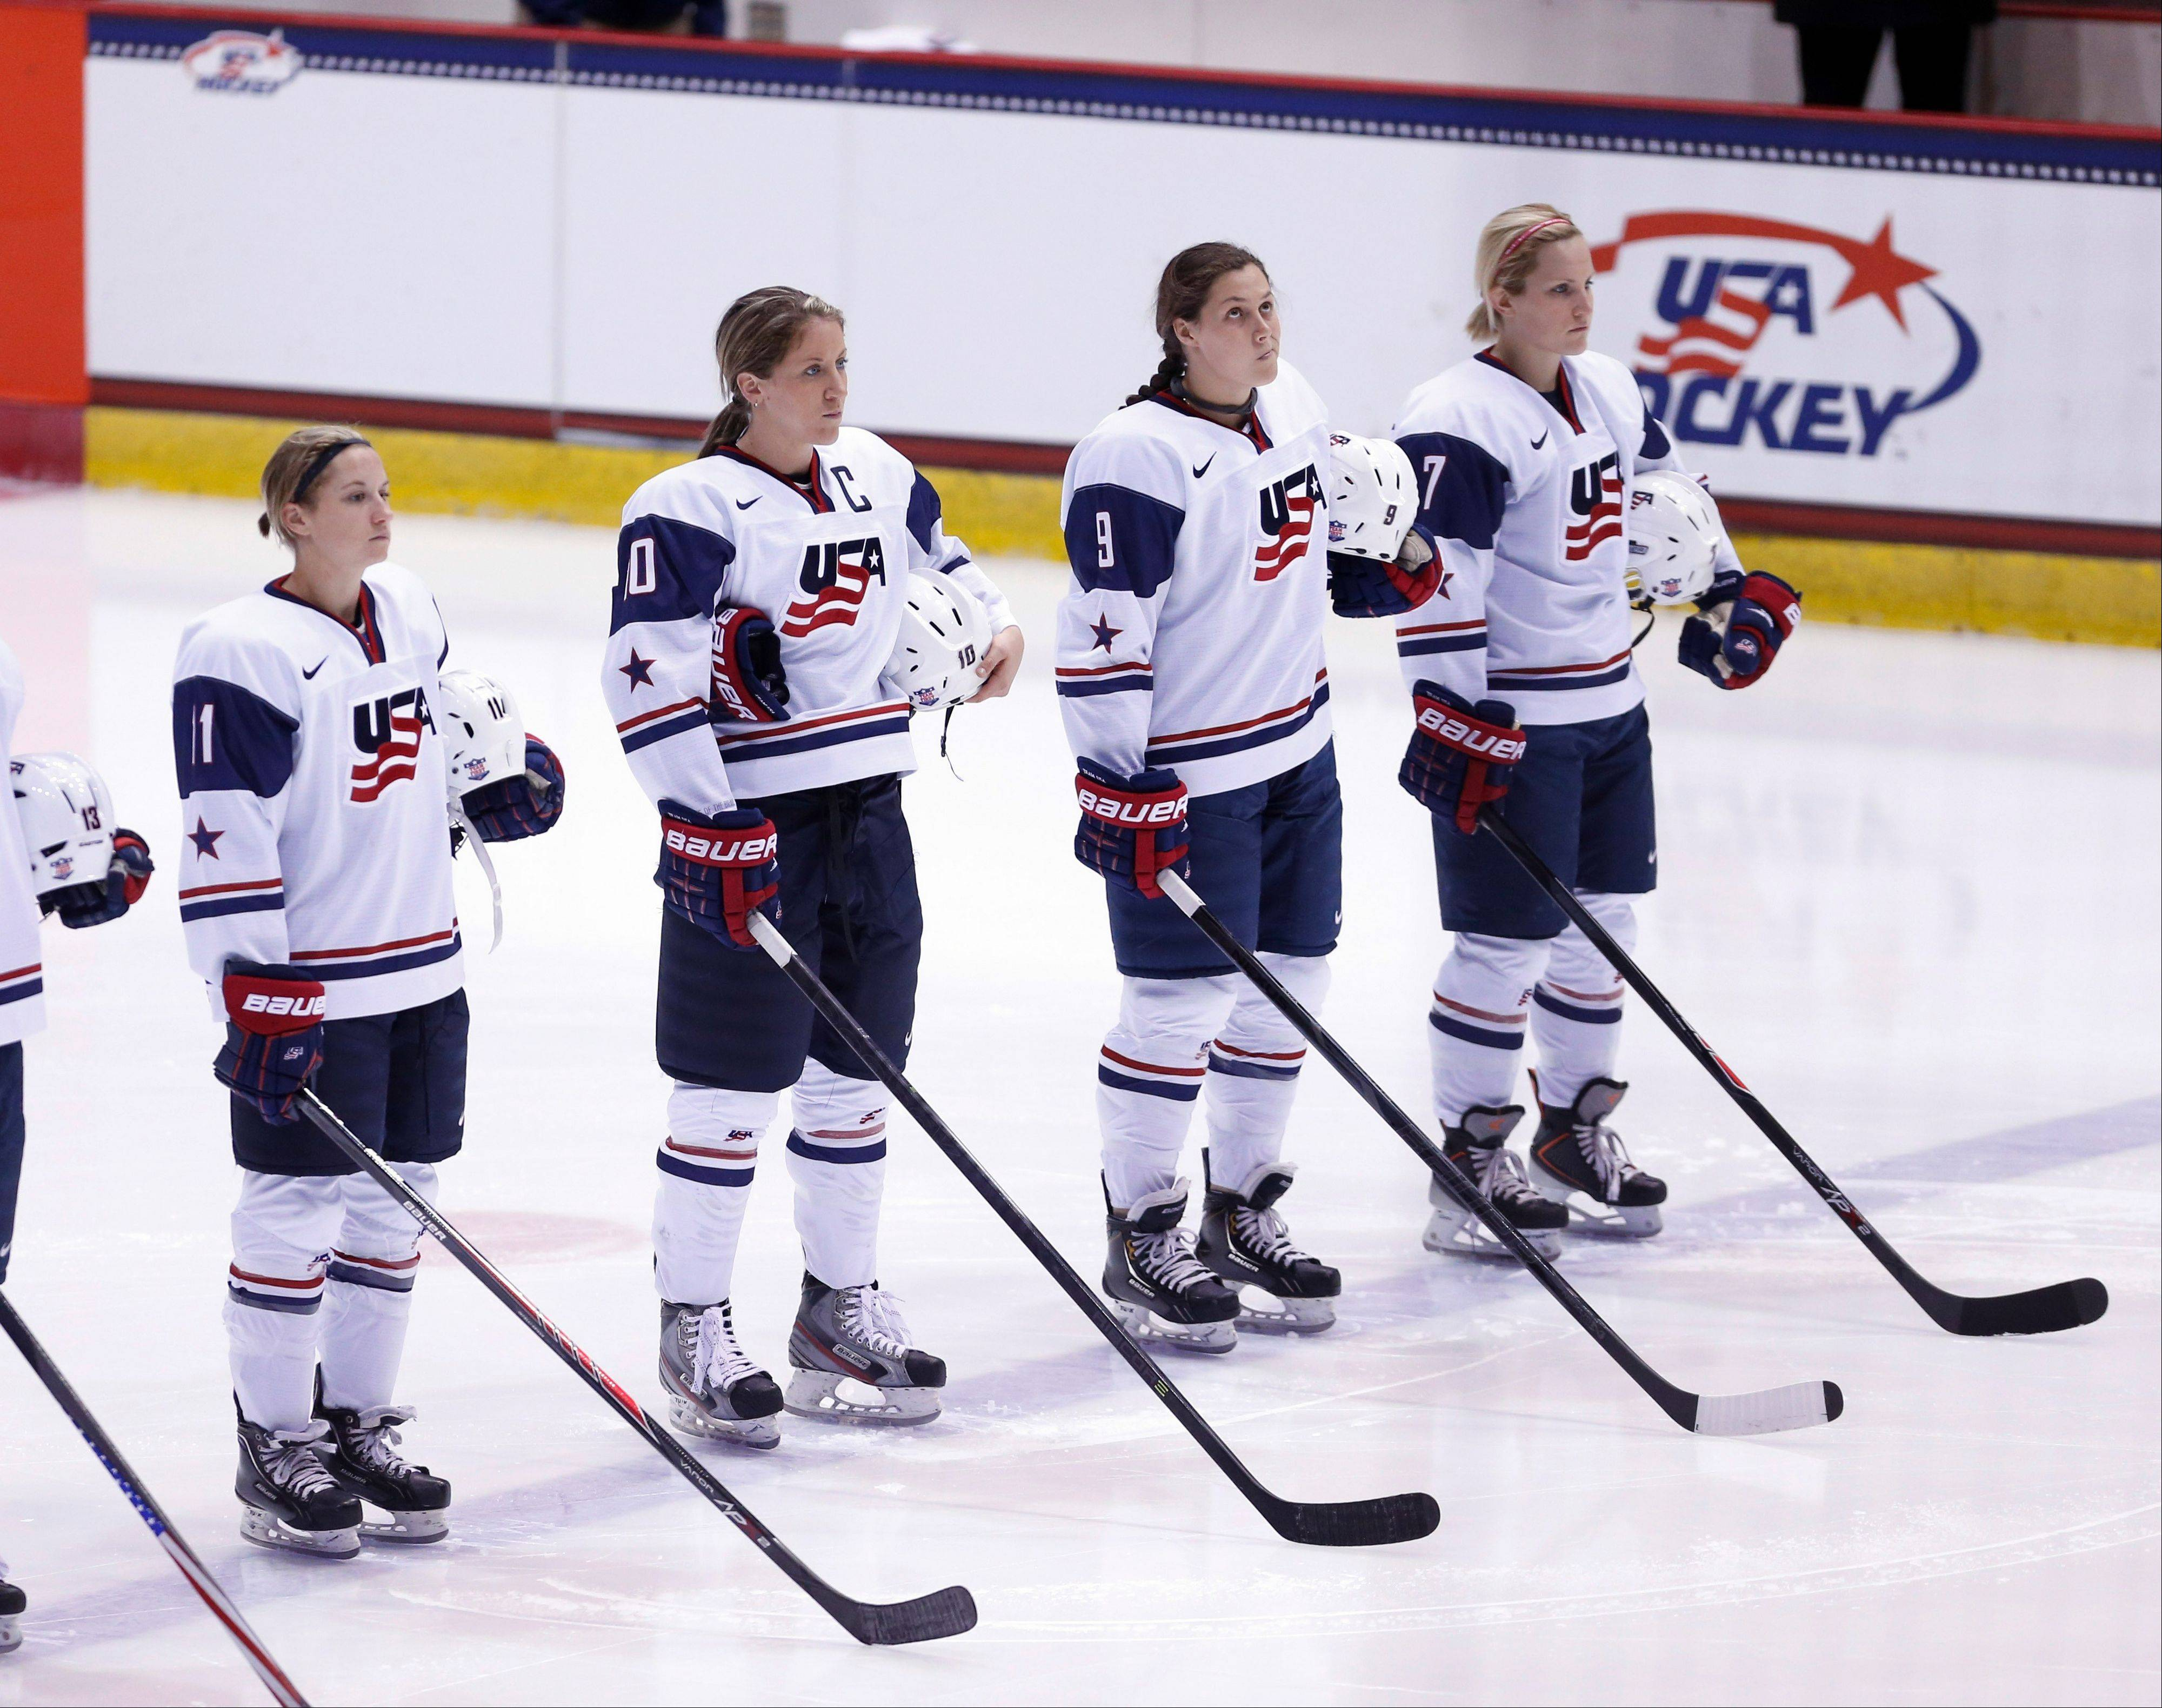 Stevenson High School grad Megan Bozek (No. 9, third from left) will represent Team USA in the 2014 Winter Olympics next month in Sochi.